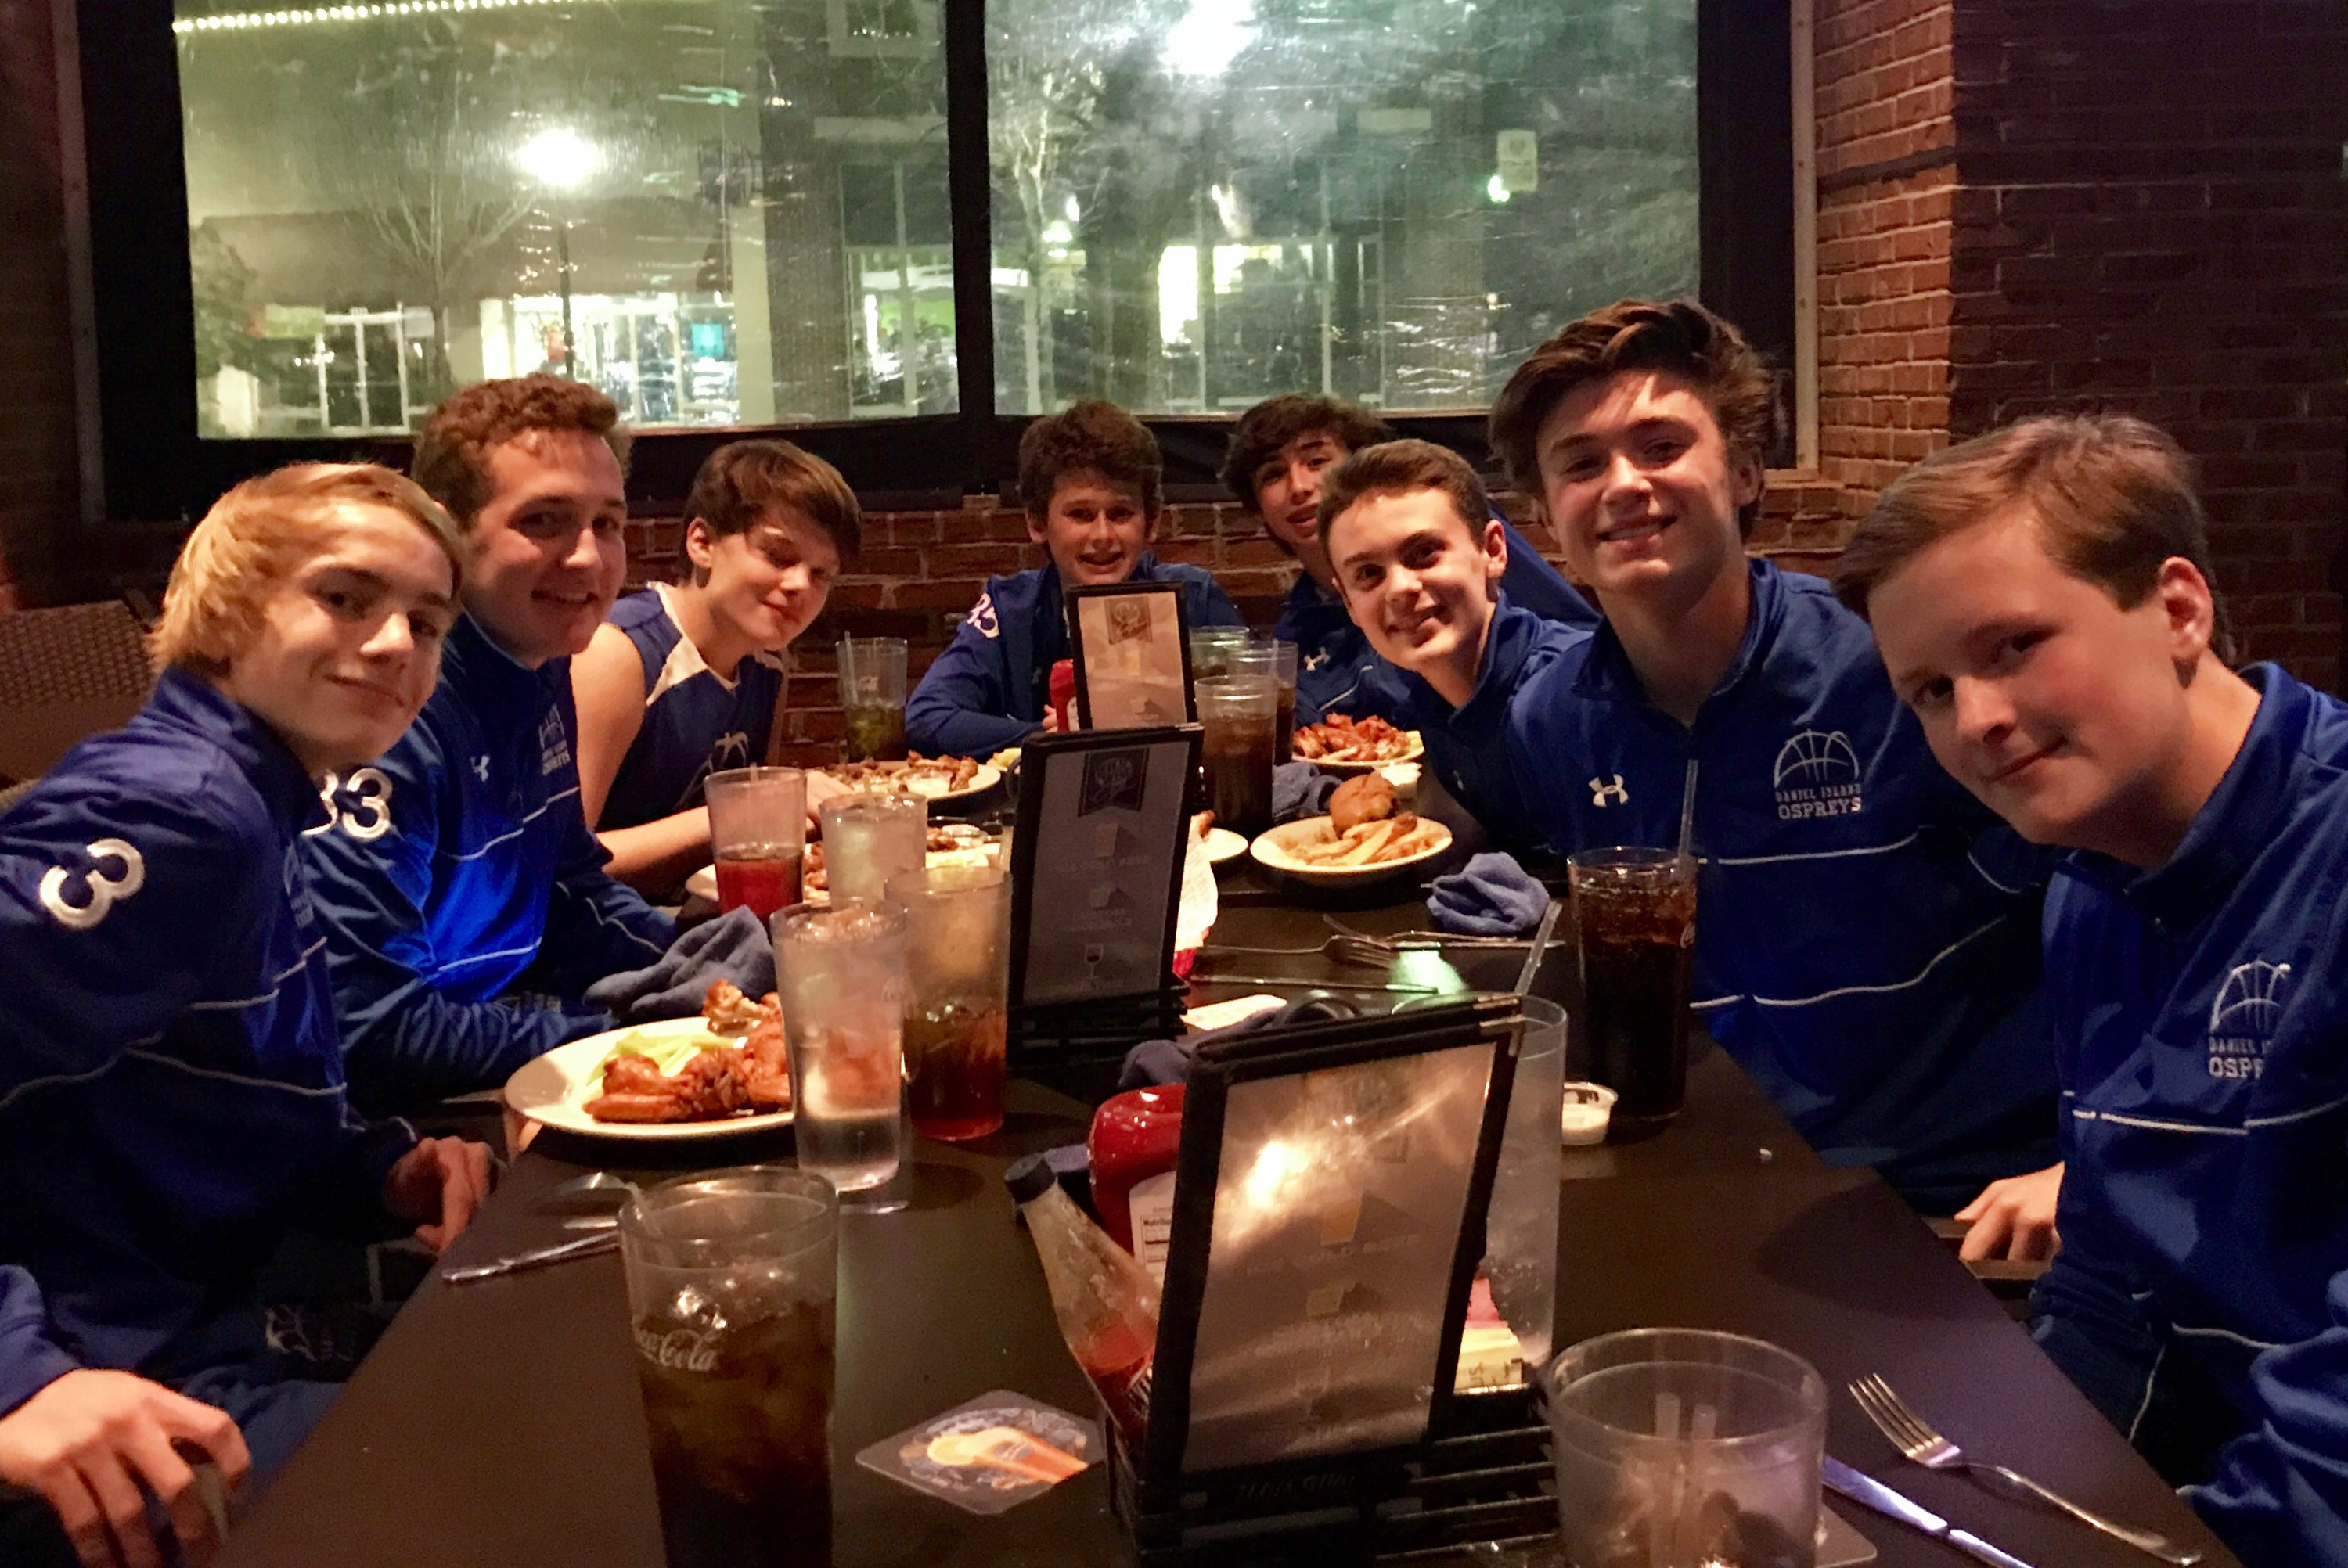 "WHOLE TEAM! 8th grade boys ""The. Whole. Team. Great effort by everyone. We could not decide. Congratulations!"" - Coach Rocky Catalano. Team members are: Carson Arnold, Brady Comer, Ben Dreyer, Stephen Etheridge, William Hyatt, Matthew Lemmon, Allen Myers, Matt Newport, Tee Skipper, Tristan Skipper, and Cole Wilson."